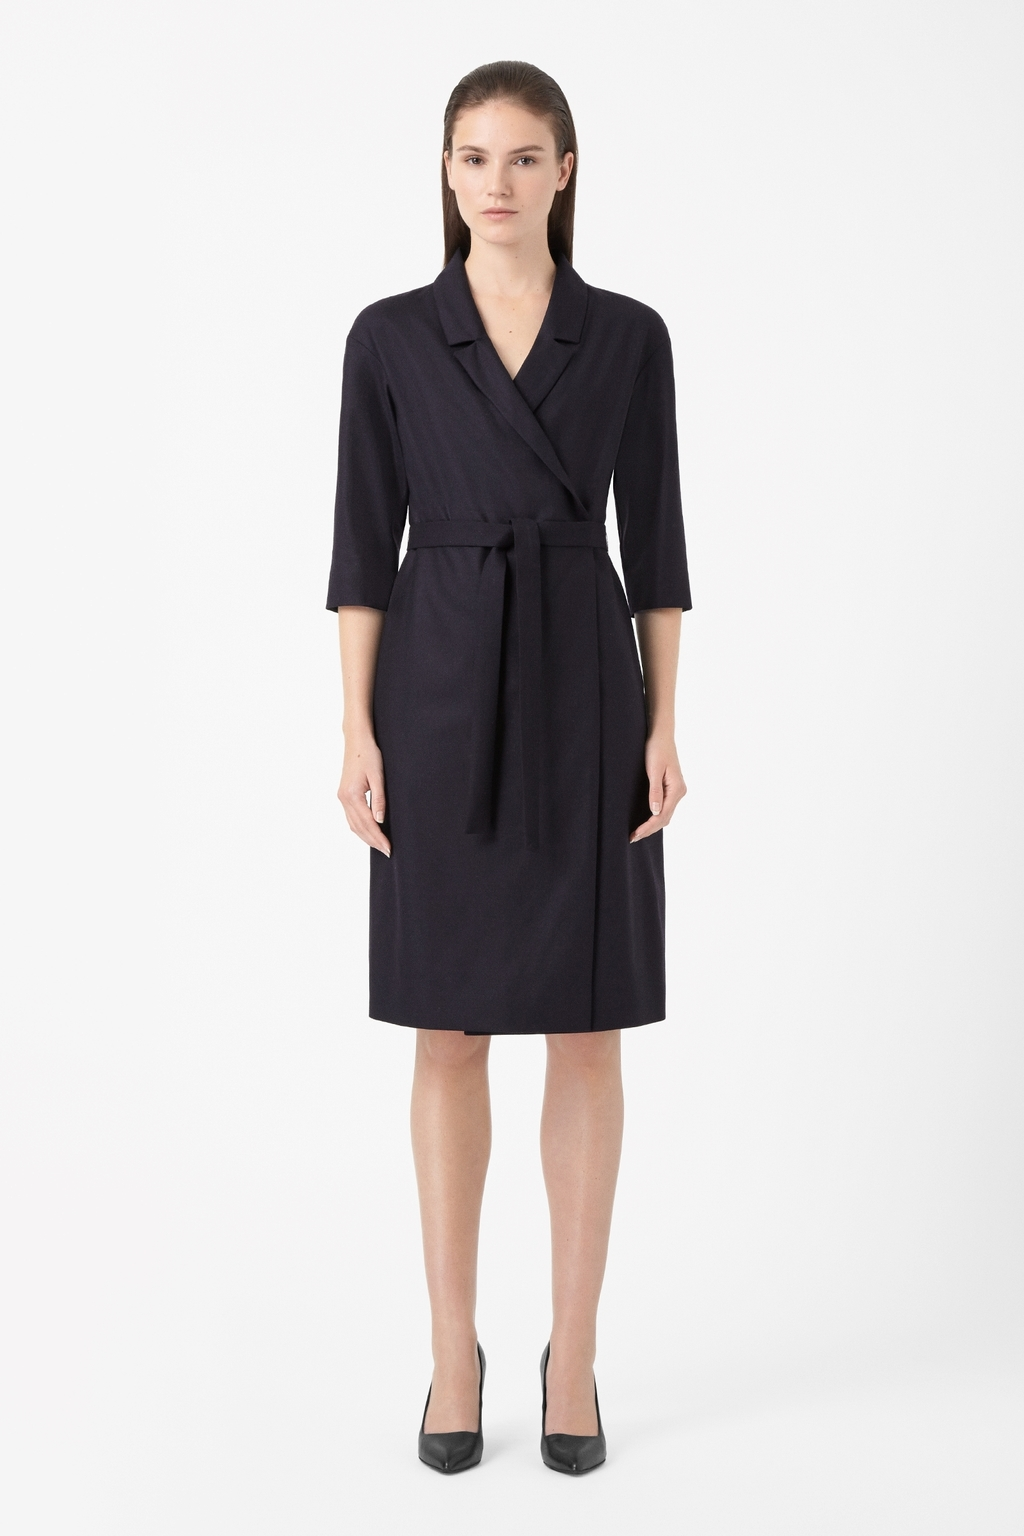 Tie Waist Blazer Dress - style: faux wrap/wrap; neckline: v-neck; pattern: plain; waist detail: belted waist/tie at waist/drawstring; predominant colour: black; occasions: evening; length: on the knee; fit: body skimming; fibres: wool - stretch; sleeve length: 3/4 length; sleeve style: standard; pattern type: fabric; texture group: woven light midweight; season: a/w 2014